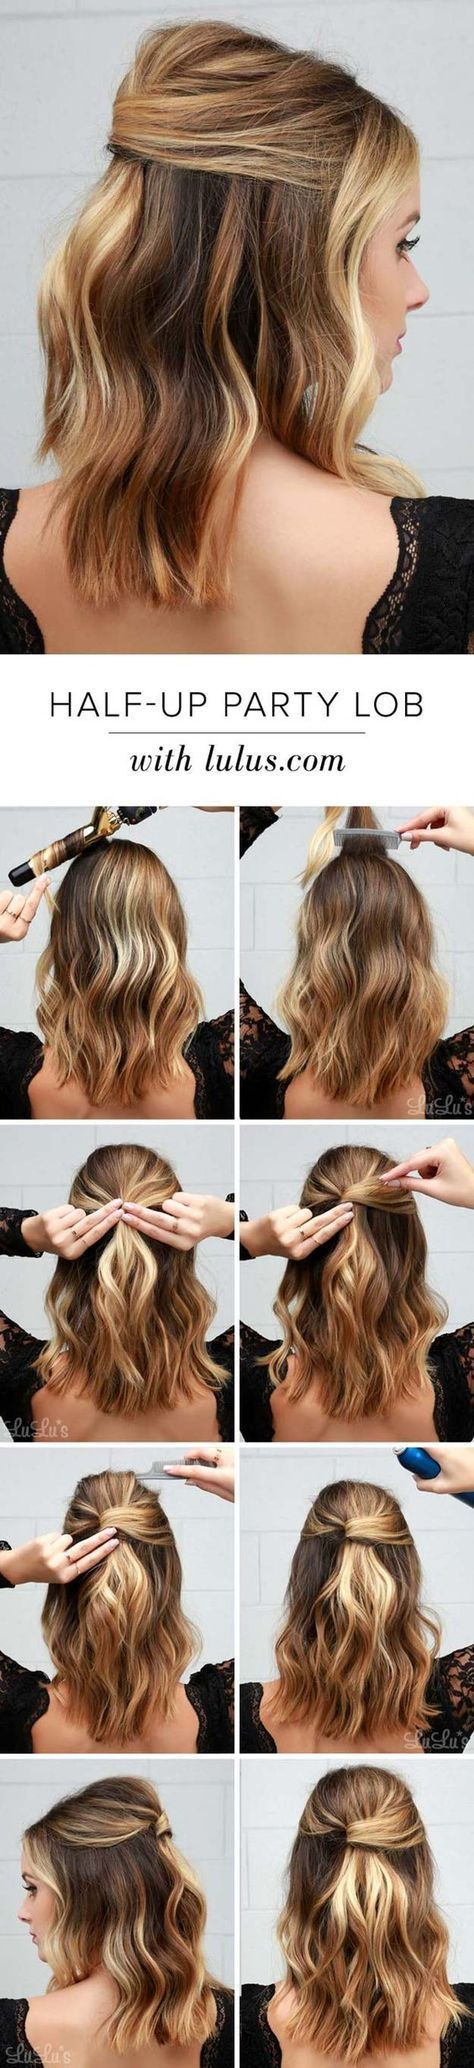 Cool Easy Hairstyles 12 photos of the cool easy hairstyle for curly hair 41 Diy Cool Easy Hairstyles That Real People Can Actually Do At Home